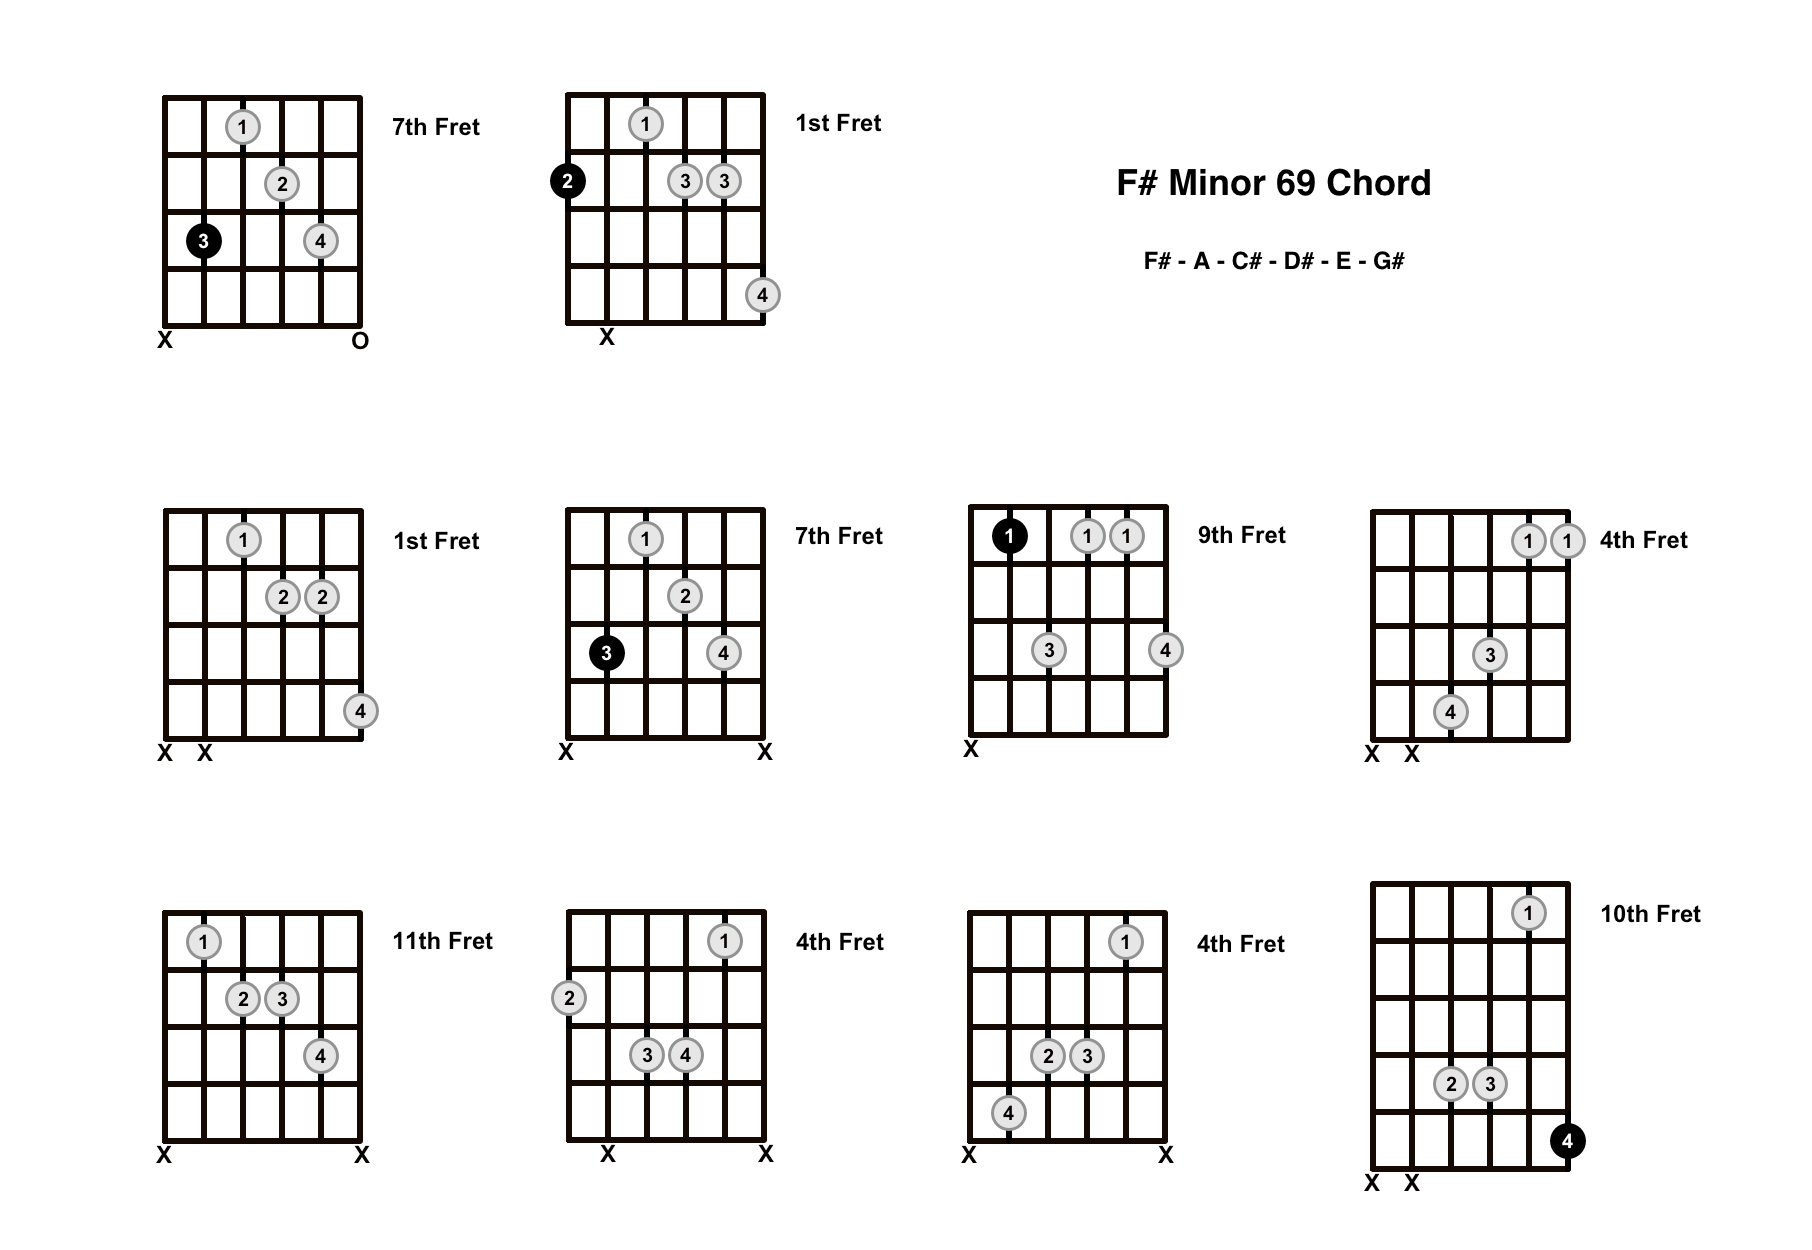 F#m69 Chord On The Guitar (F Sharp Minor 69) – Diagrams, Finger Positions and Theory